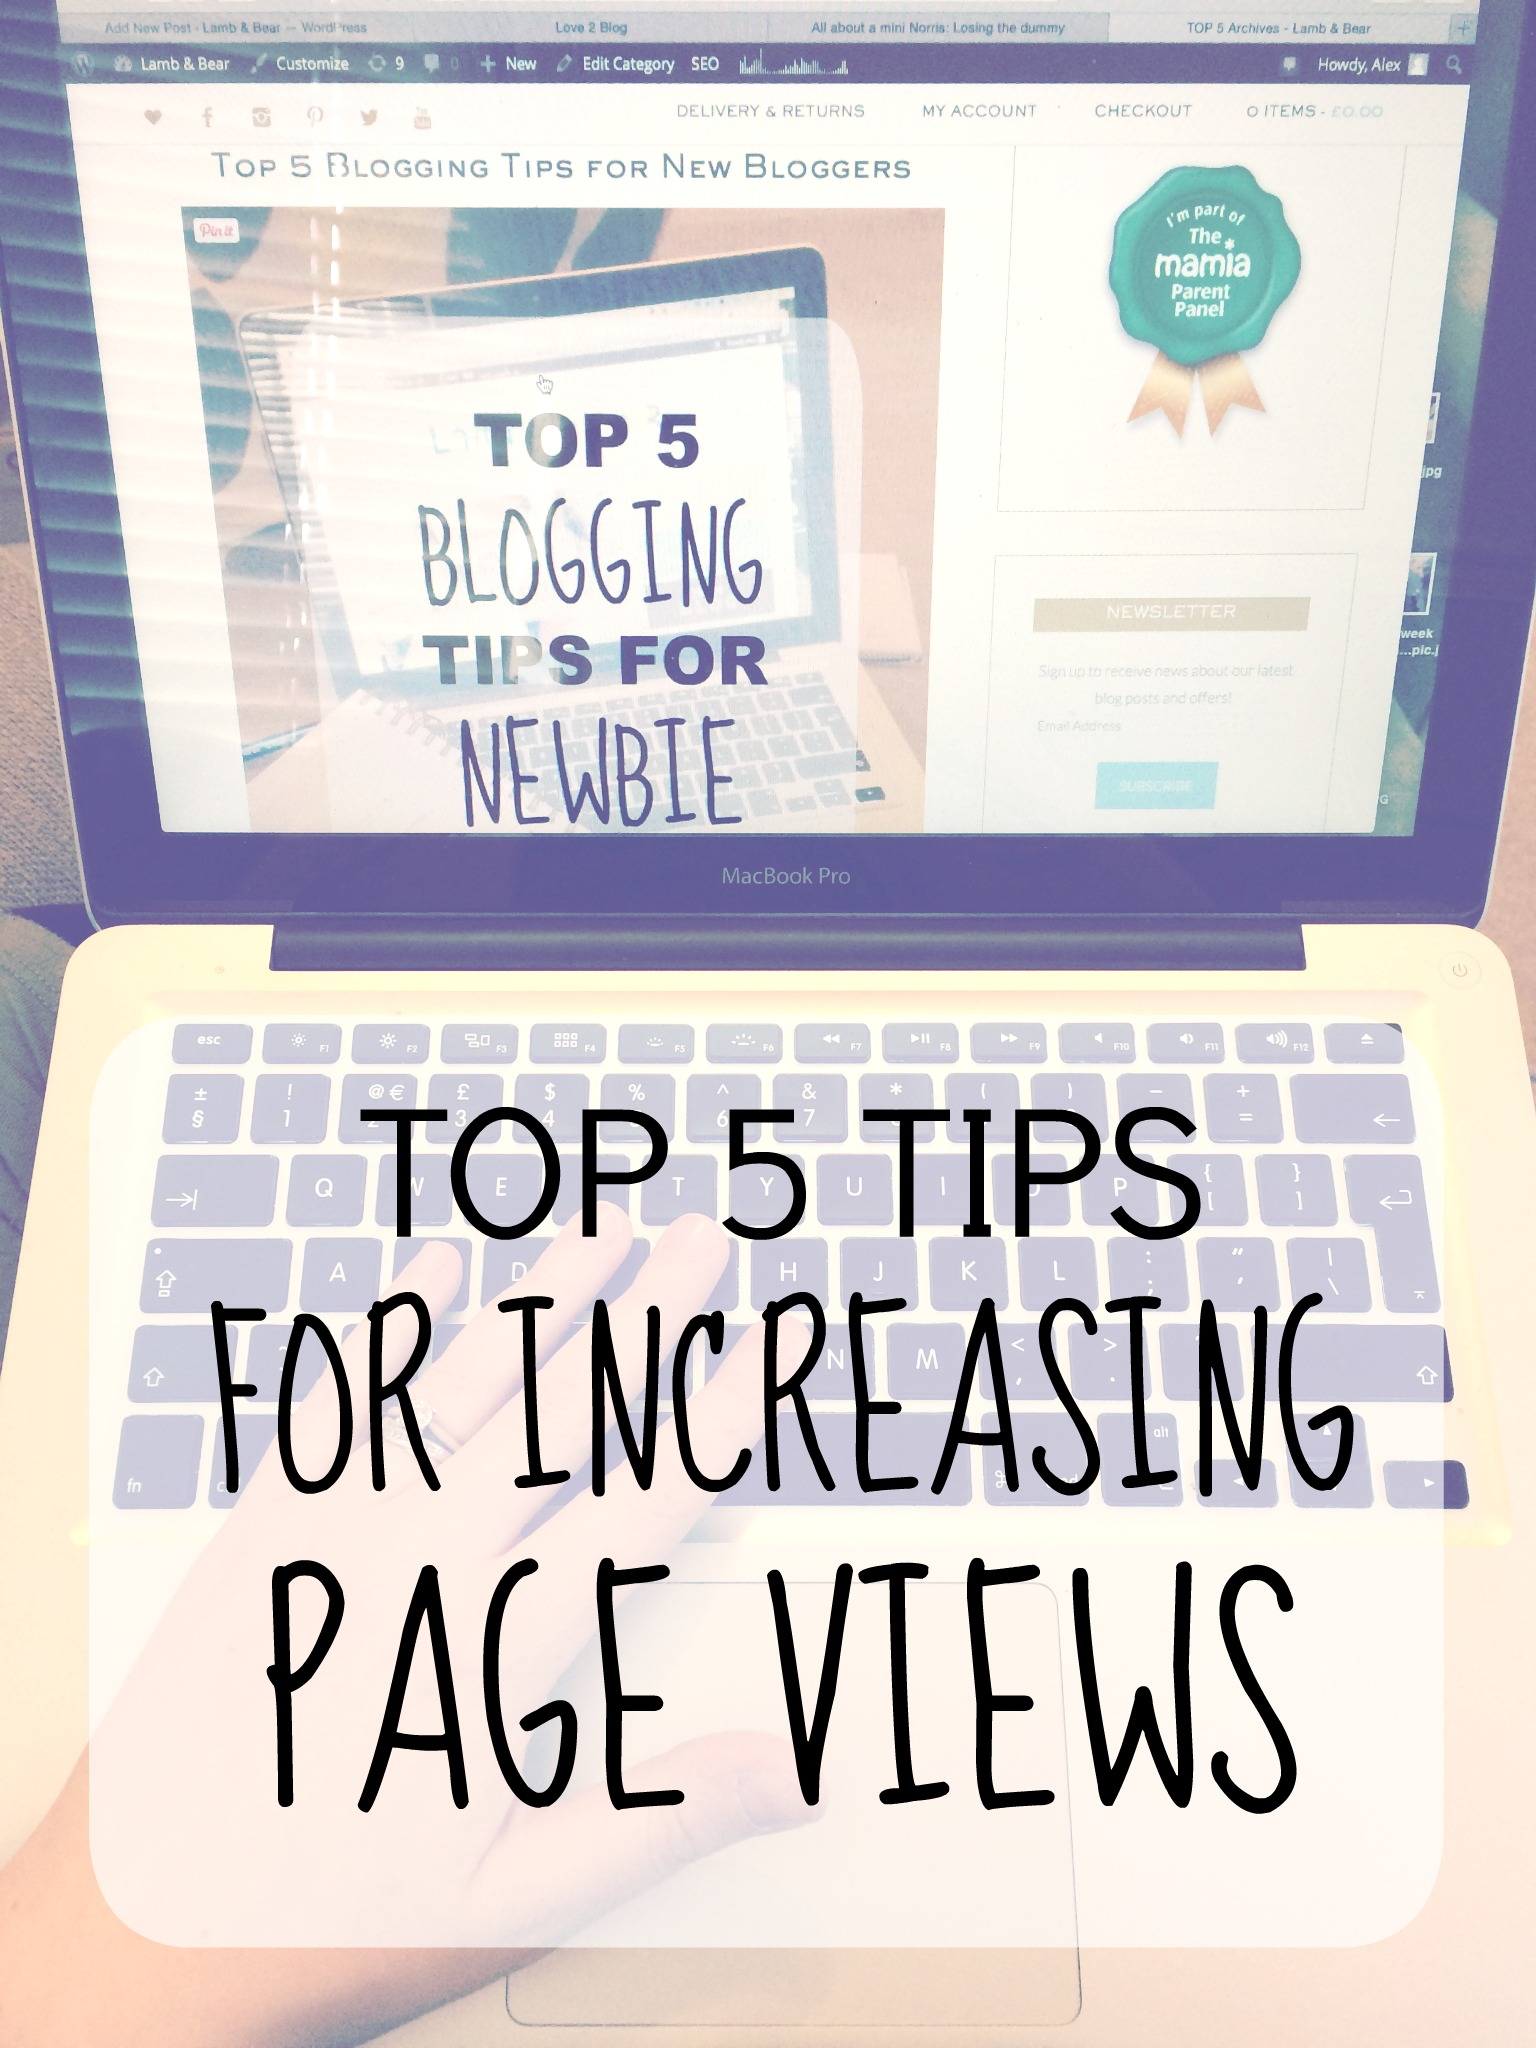 top tips page views